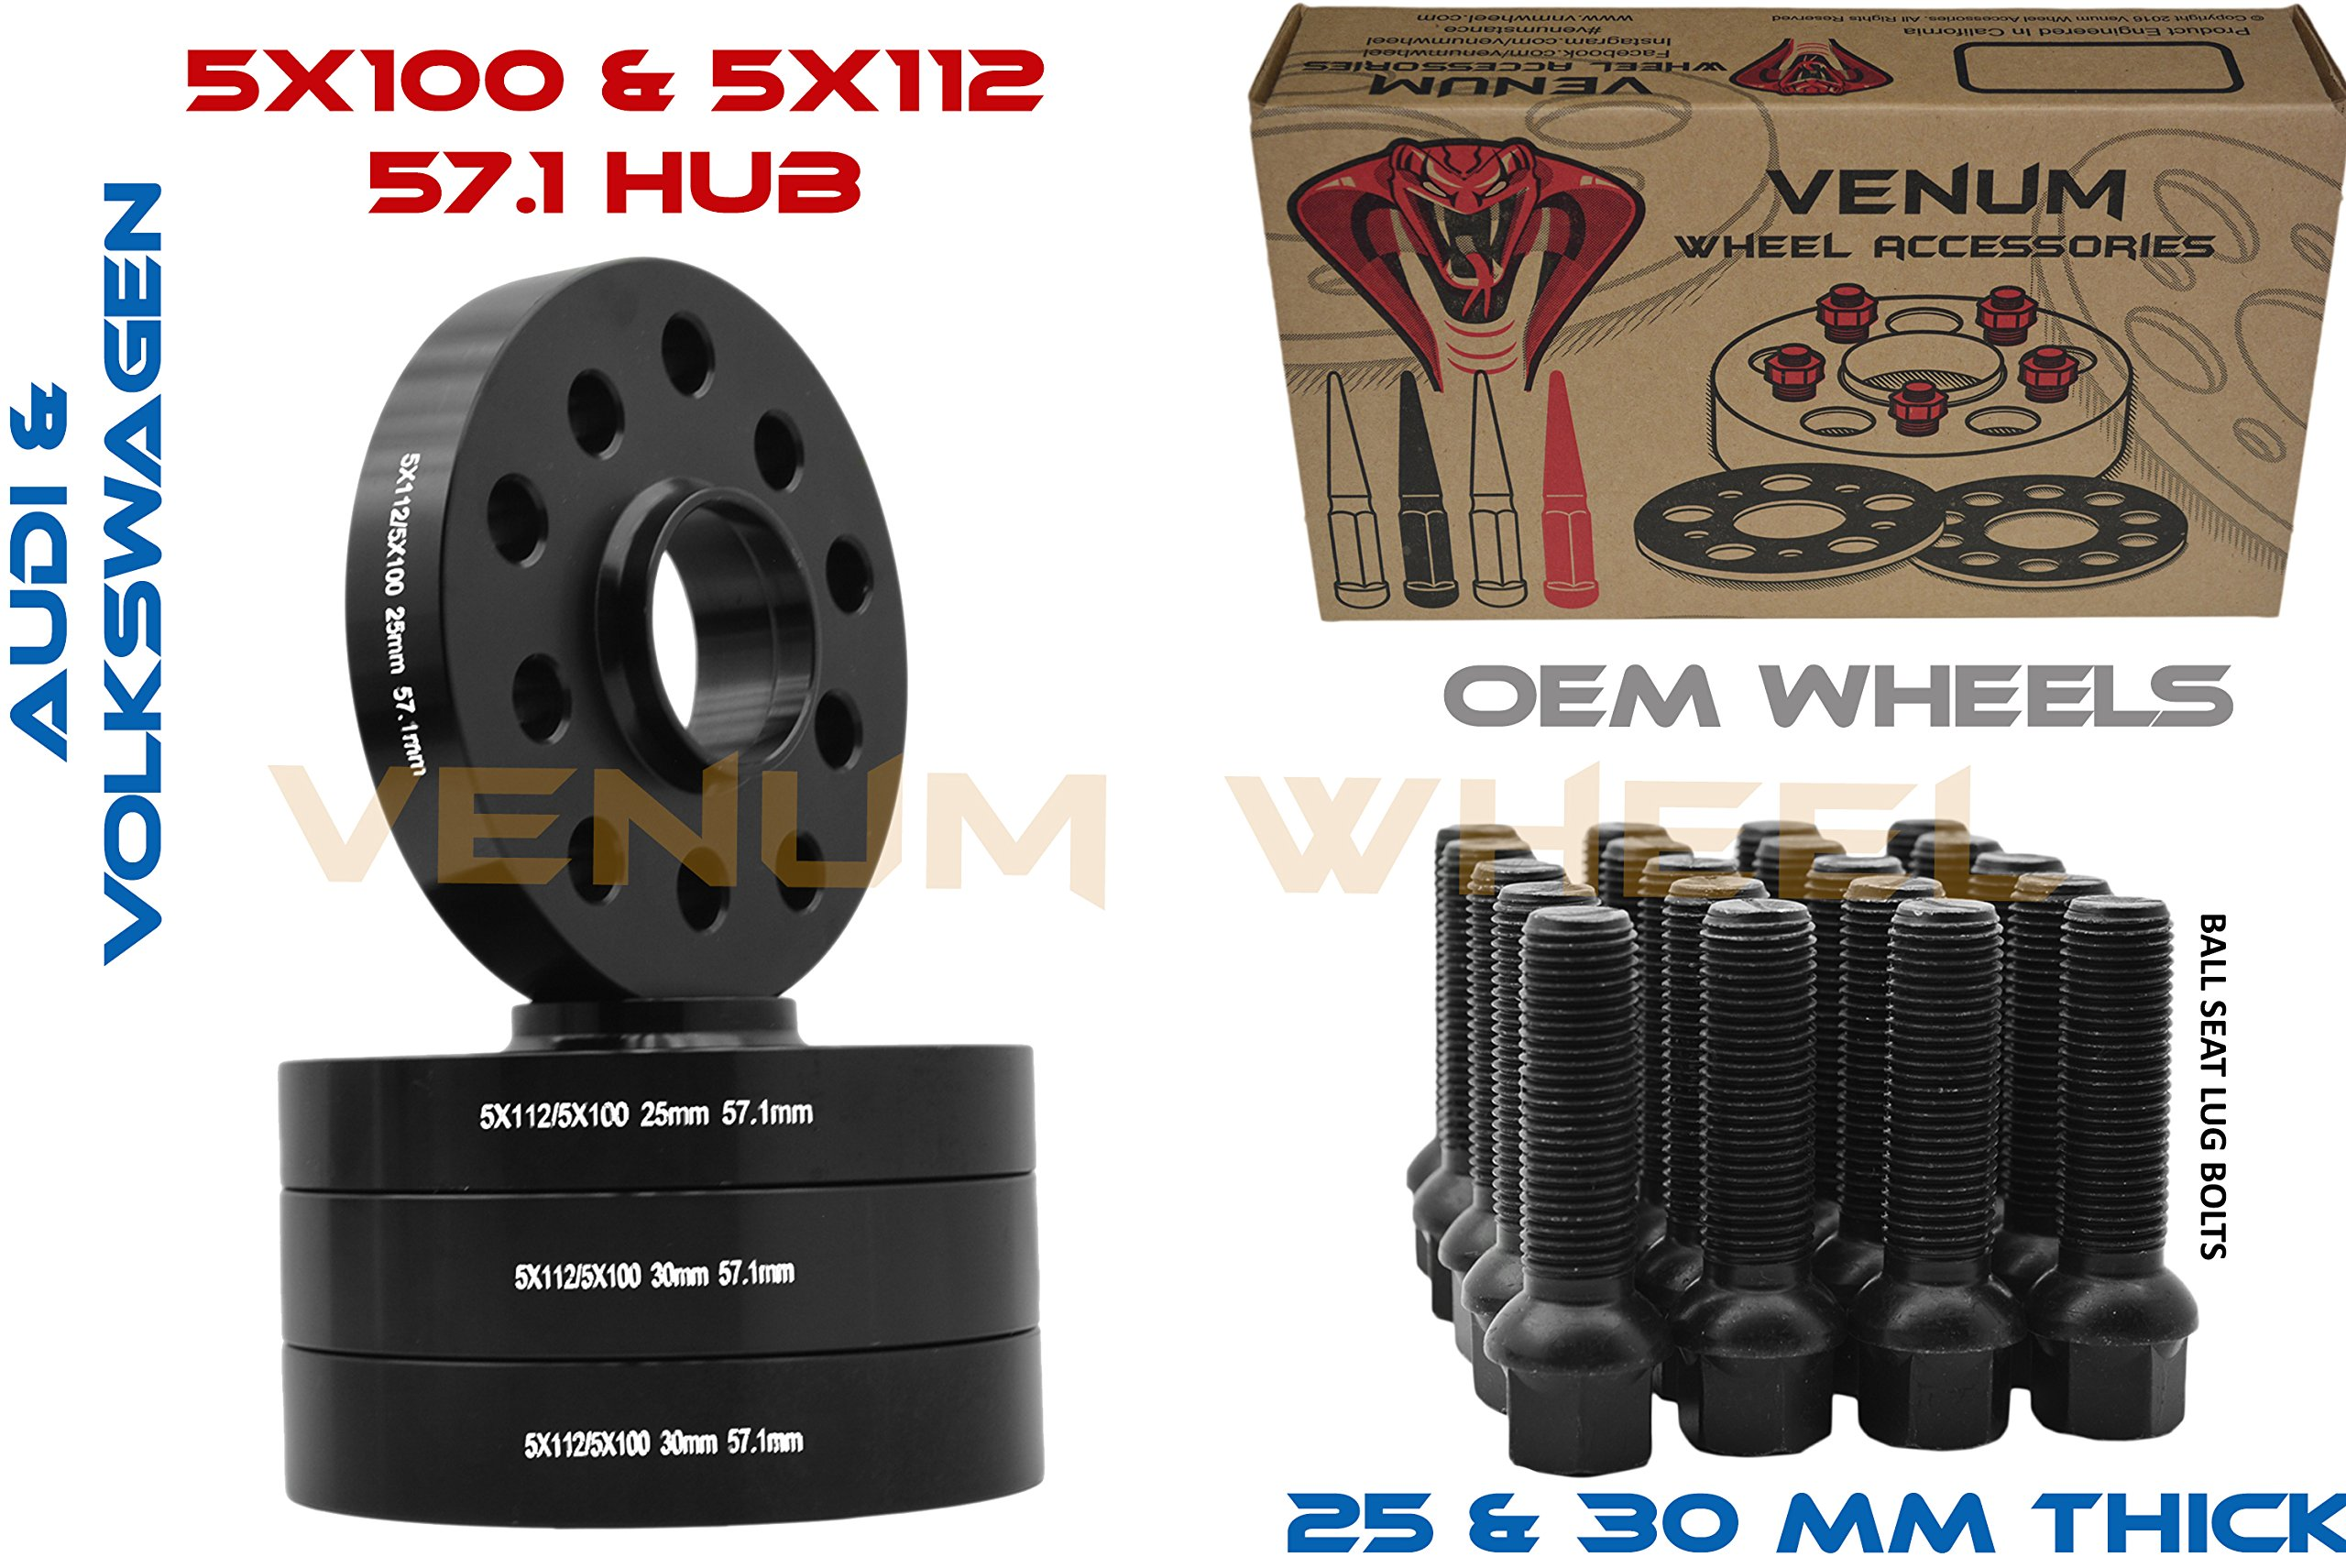 Complete Staggered Kit of 25mm & 30mm Black Hubcentric (57.1) Wheel Spacer Audi Volkswagen 5x100 & 5x112 Bolt Pattern + 20 Pc 14x1.5 Black Ball Seat Lug Bolts …